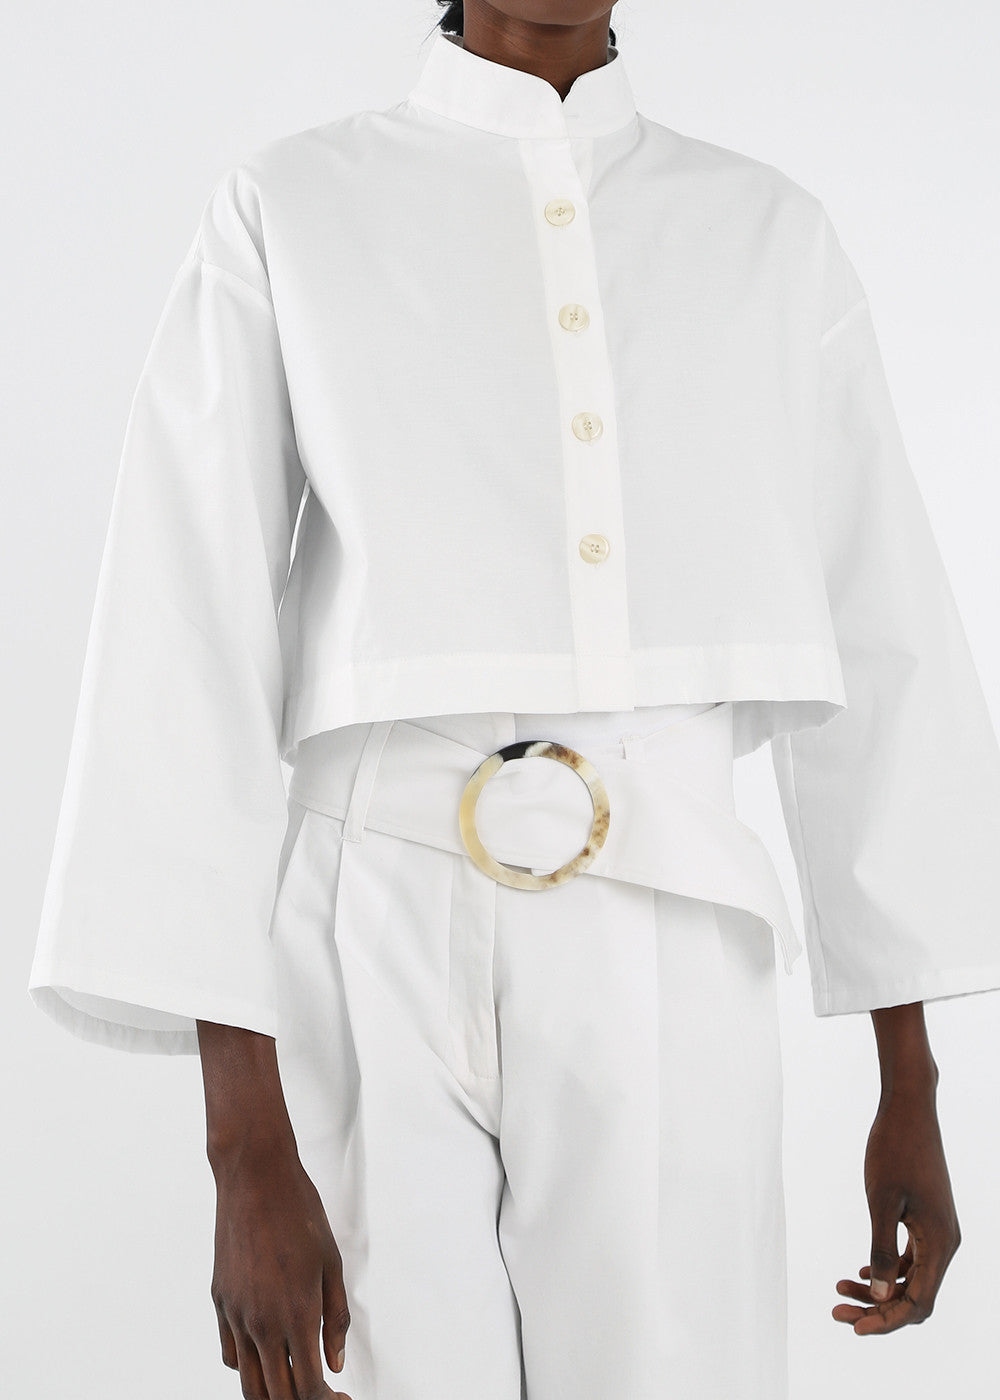 Delfina Balda White Armonia Button Up — New Classics Studios